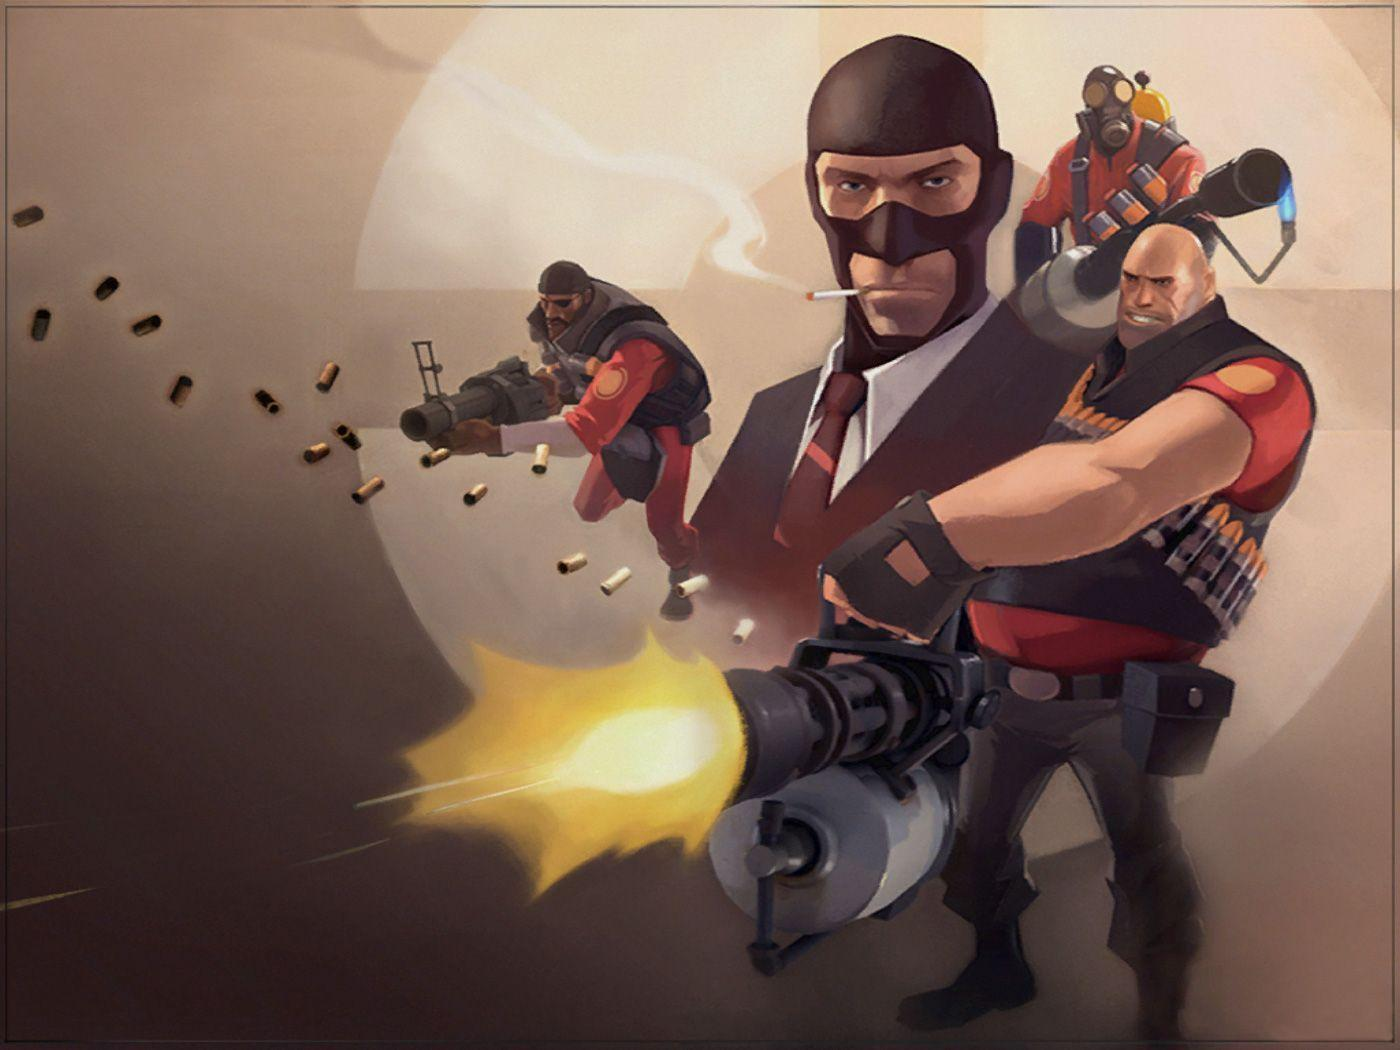 262 Team Fortress 2 Wallpapers